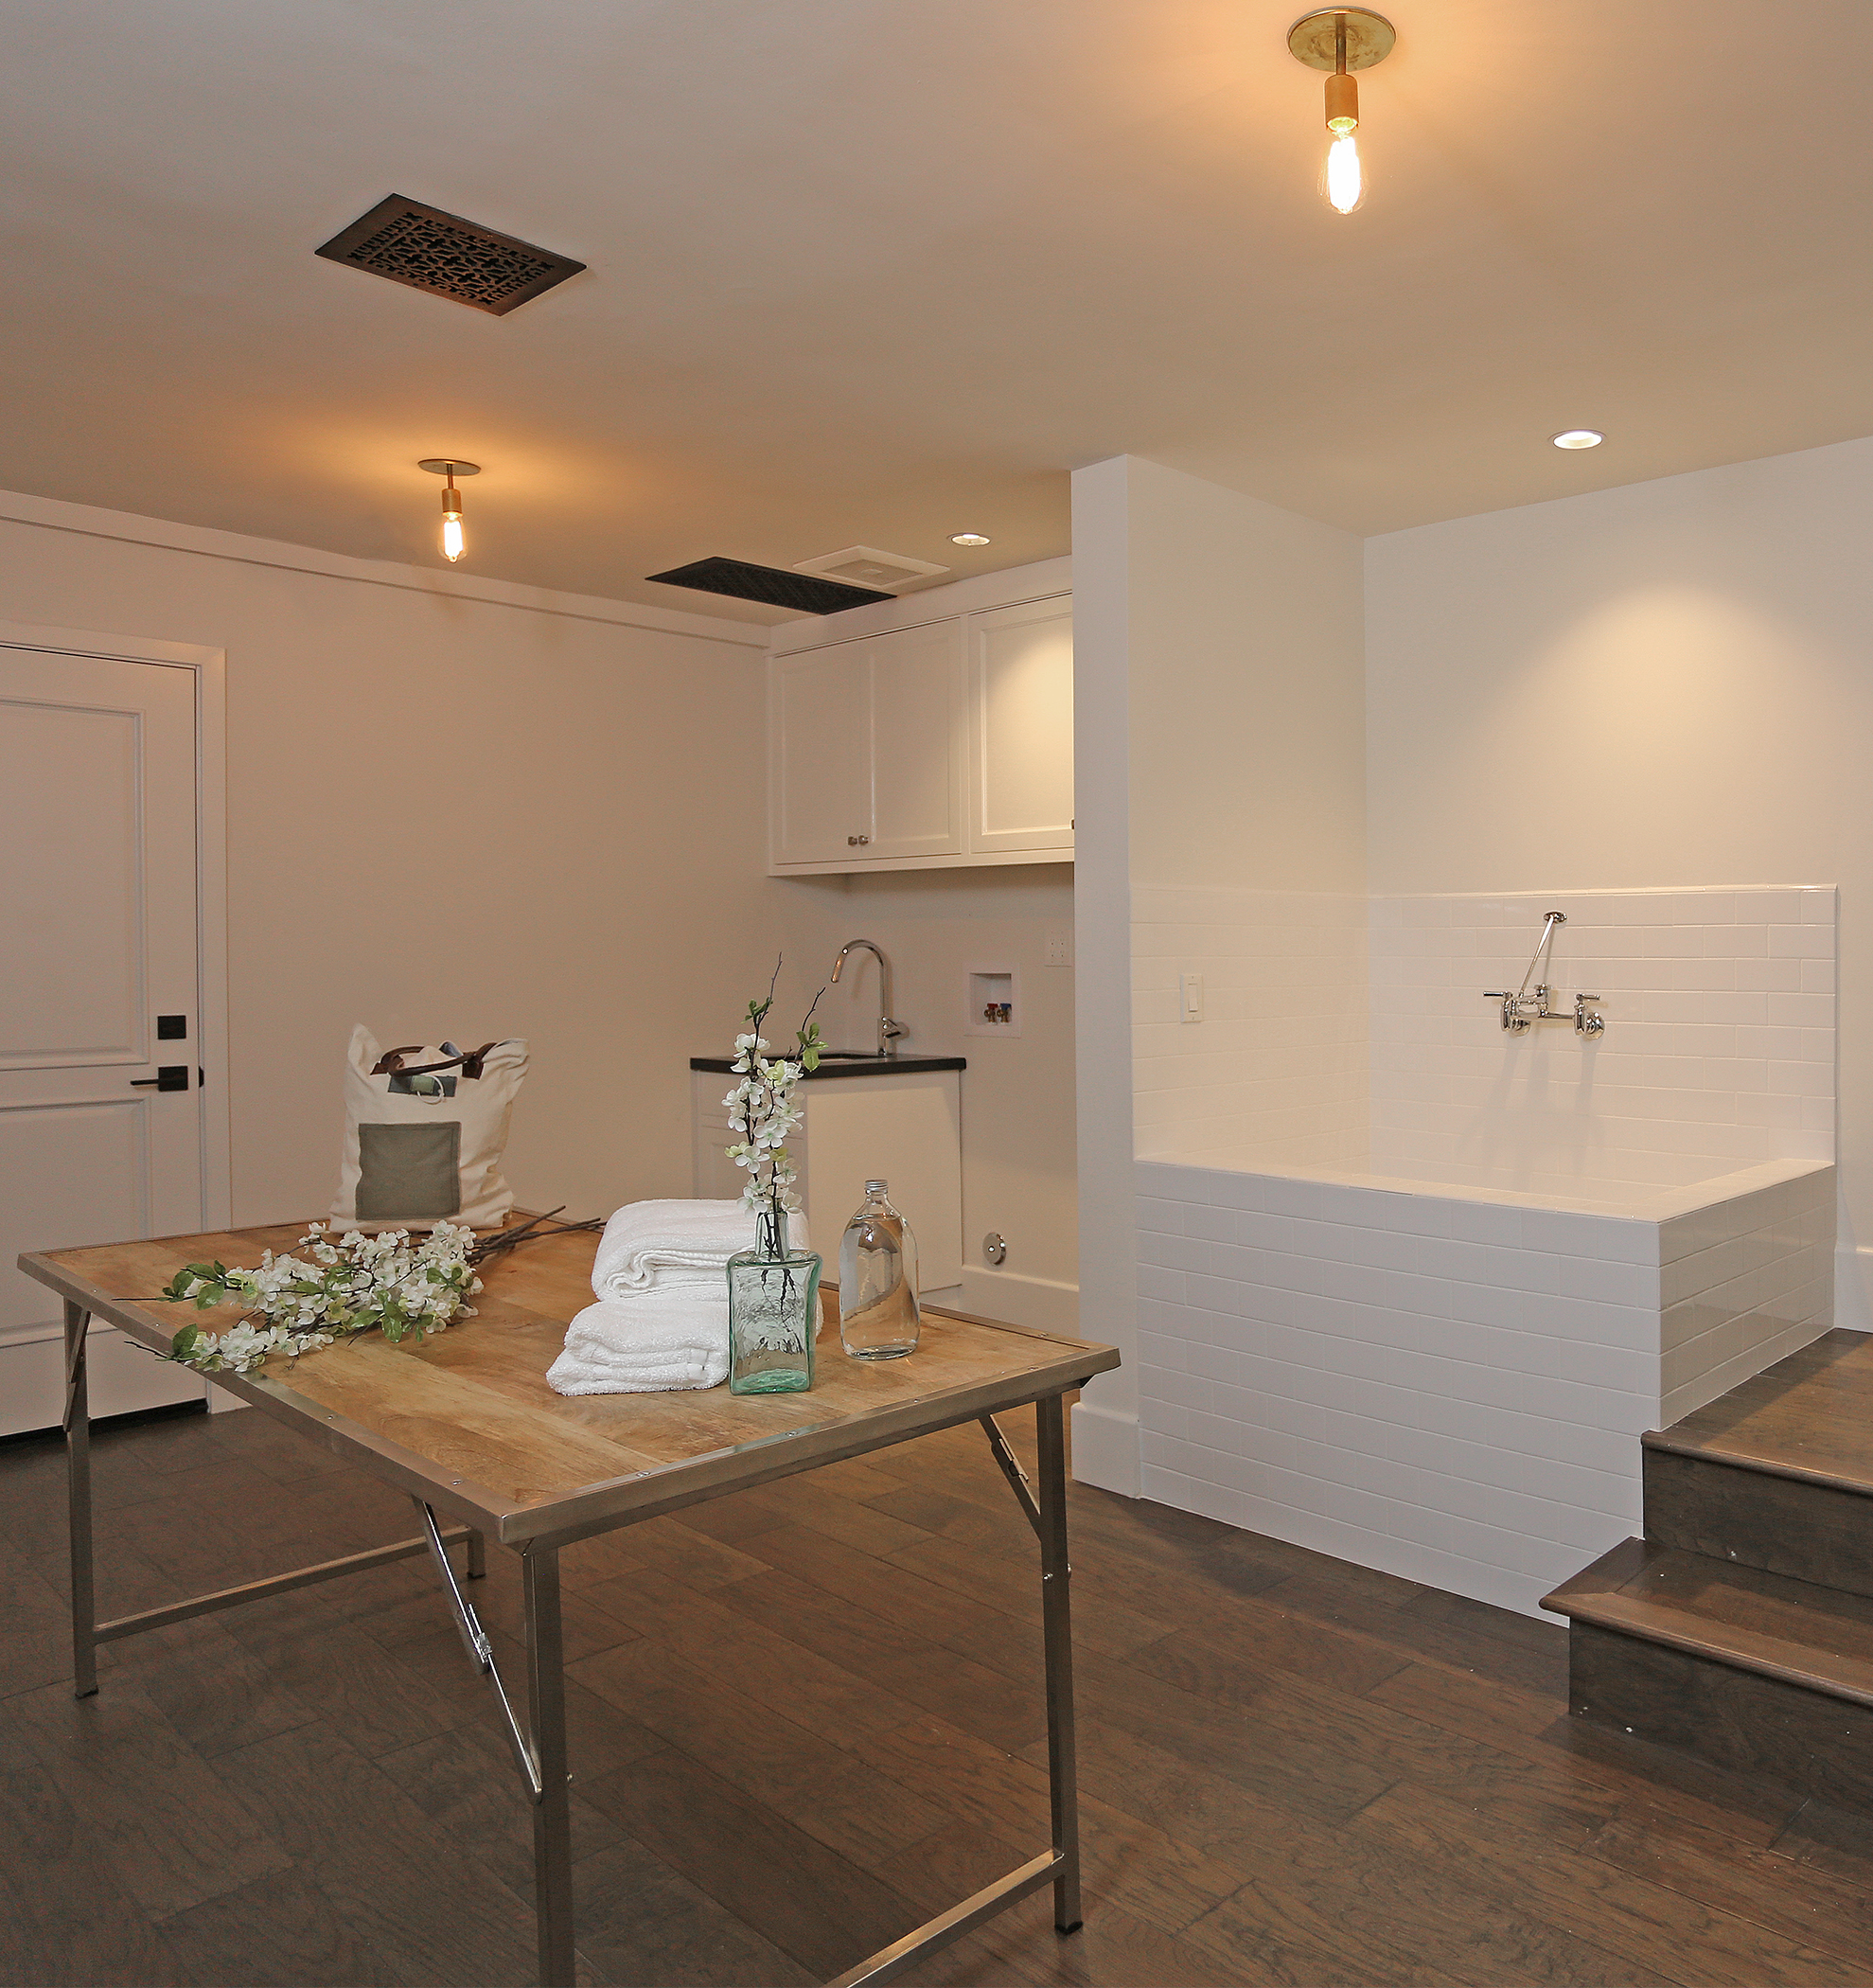 ANR Signature Collection mansion includes a dog bath!